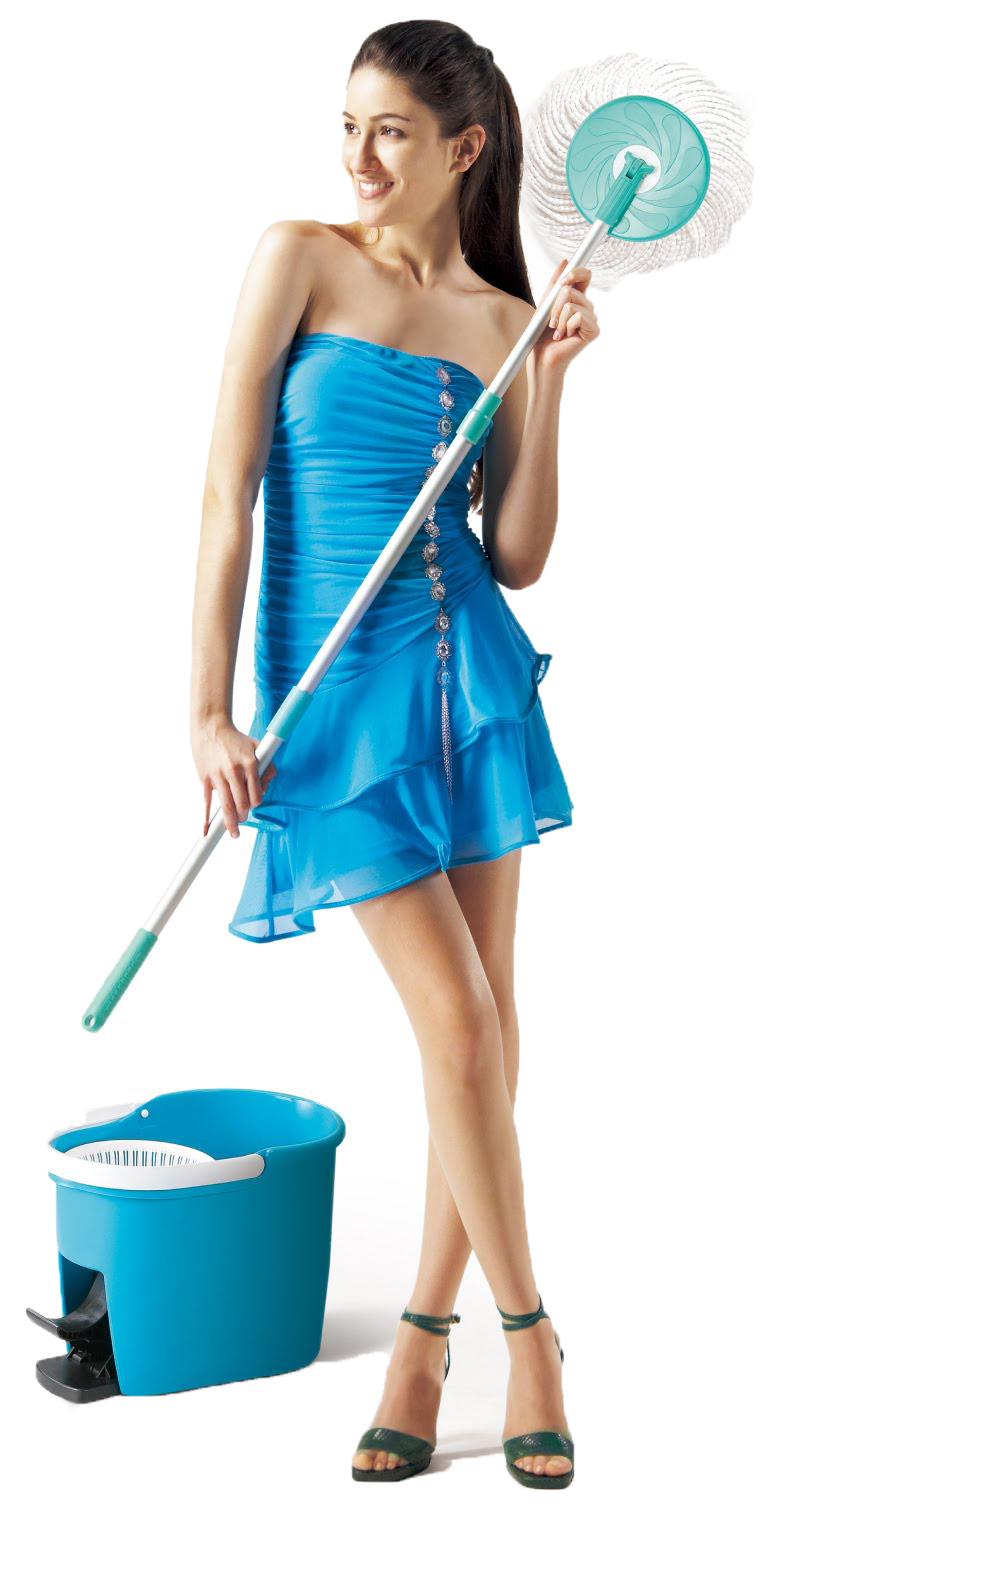 Pleasant Home Cleaning Service San Clemente, CA